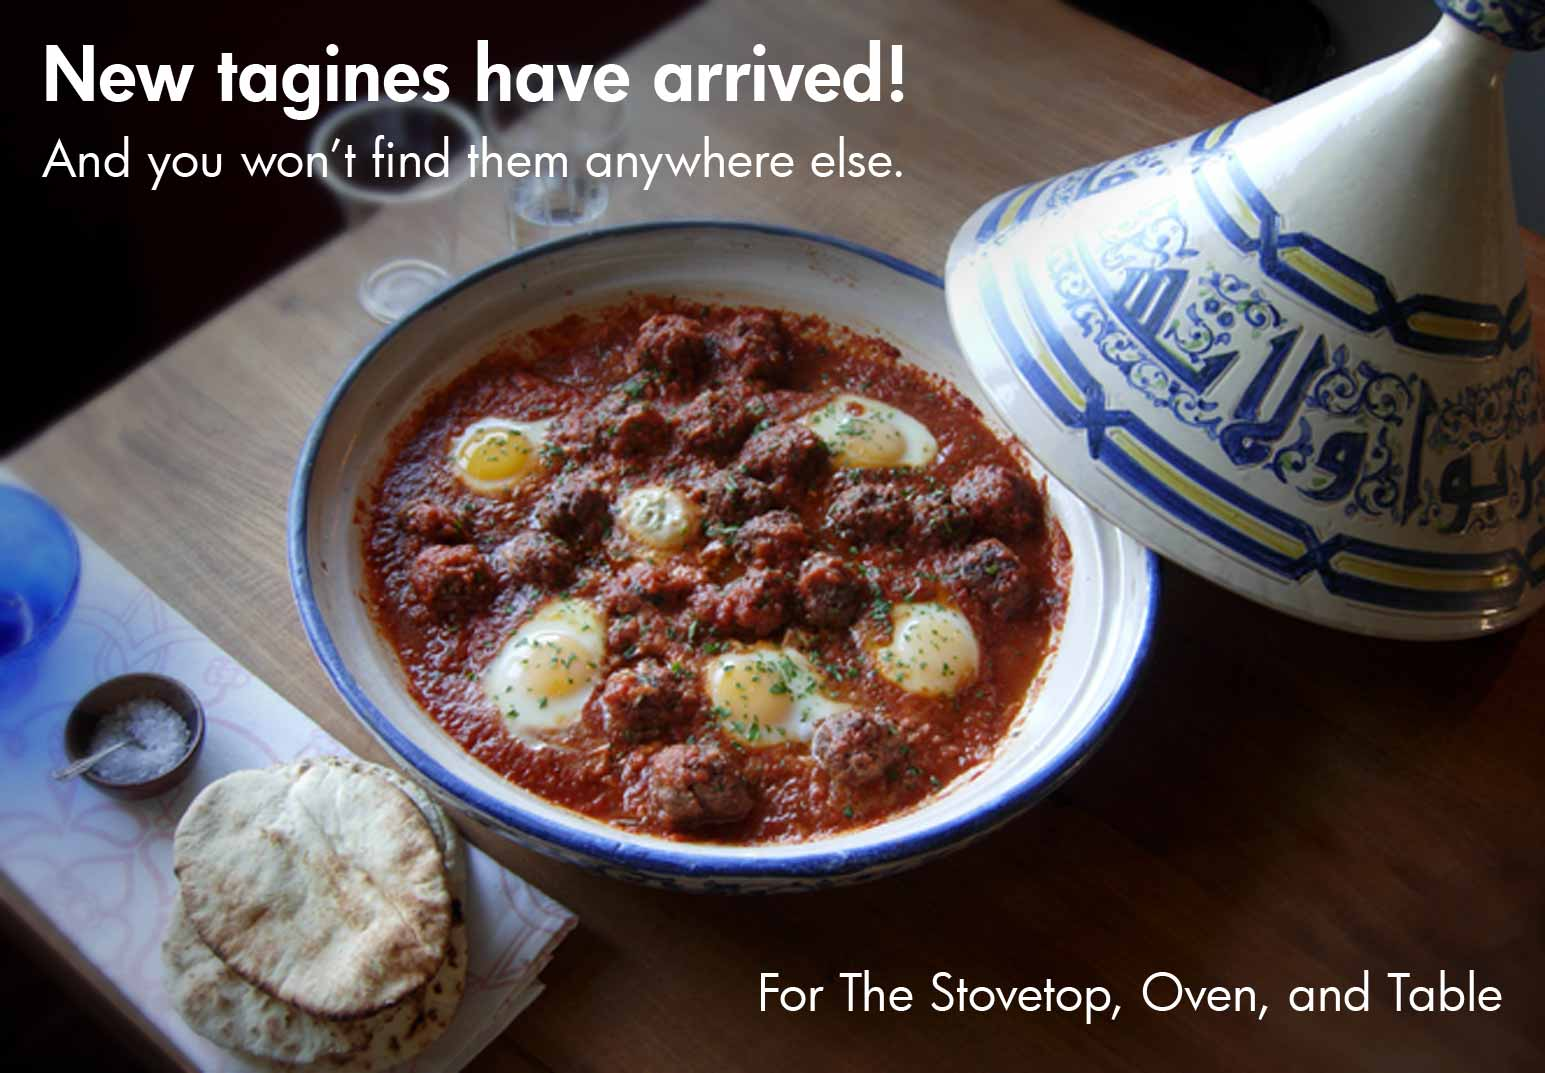 New tagines have arrived